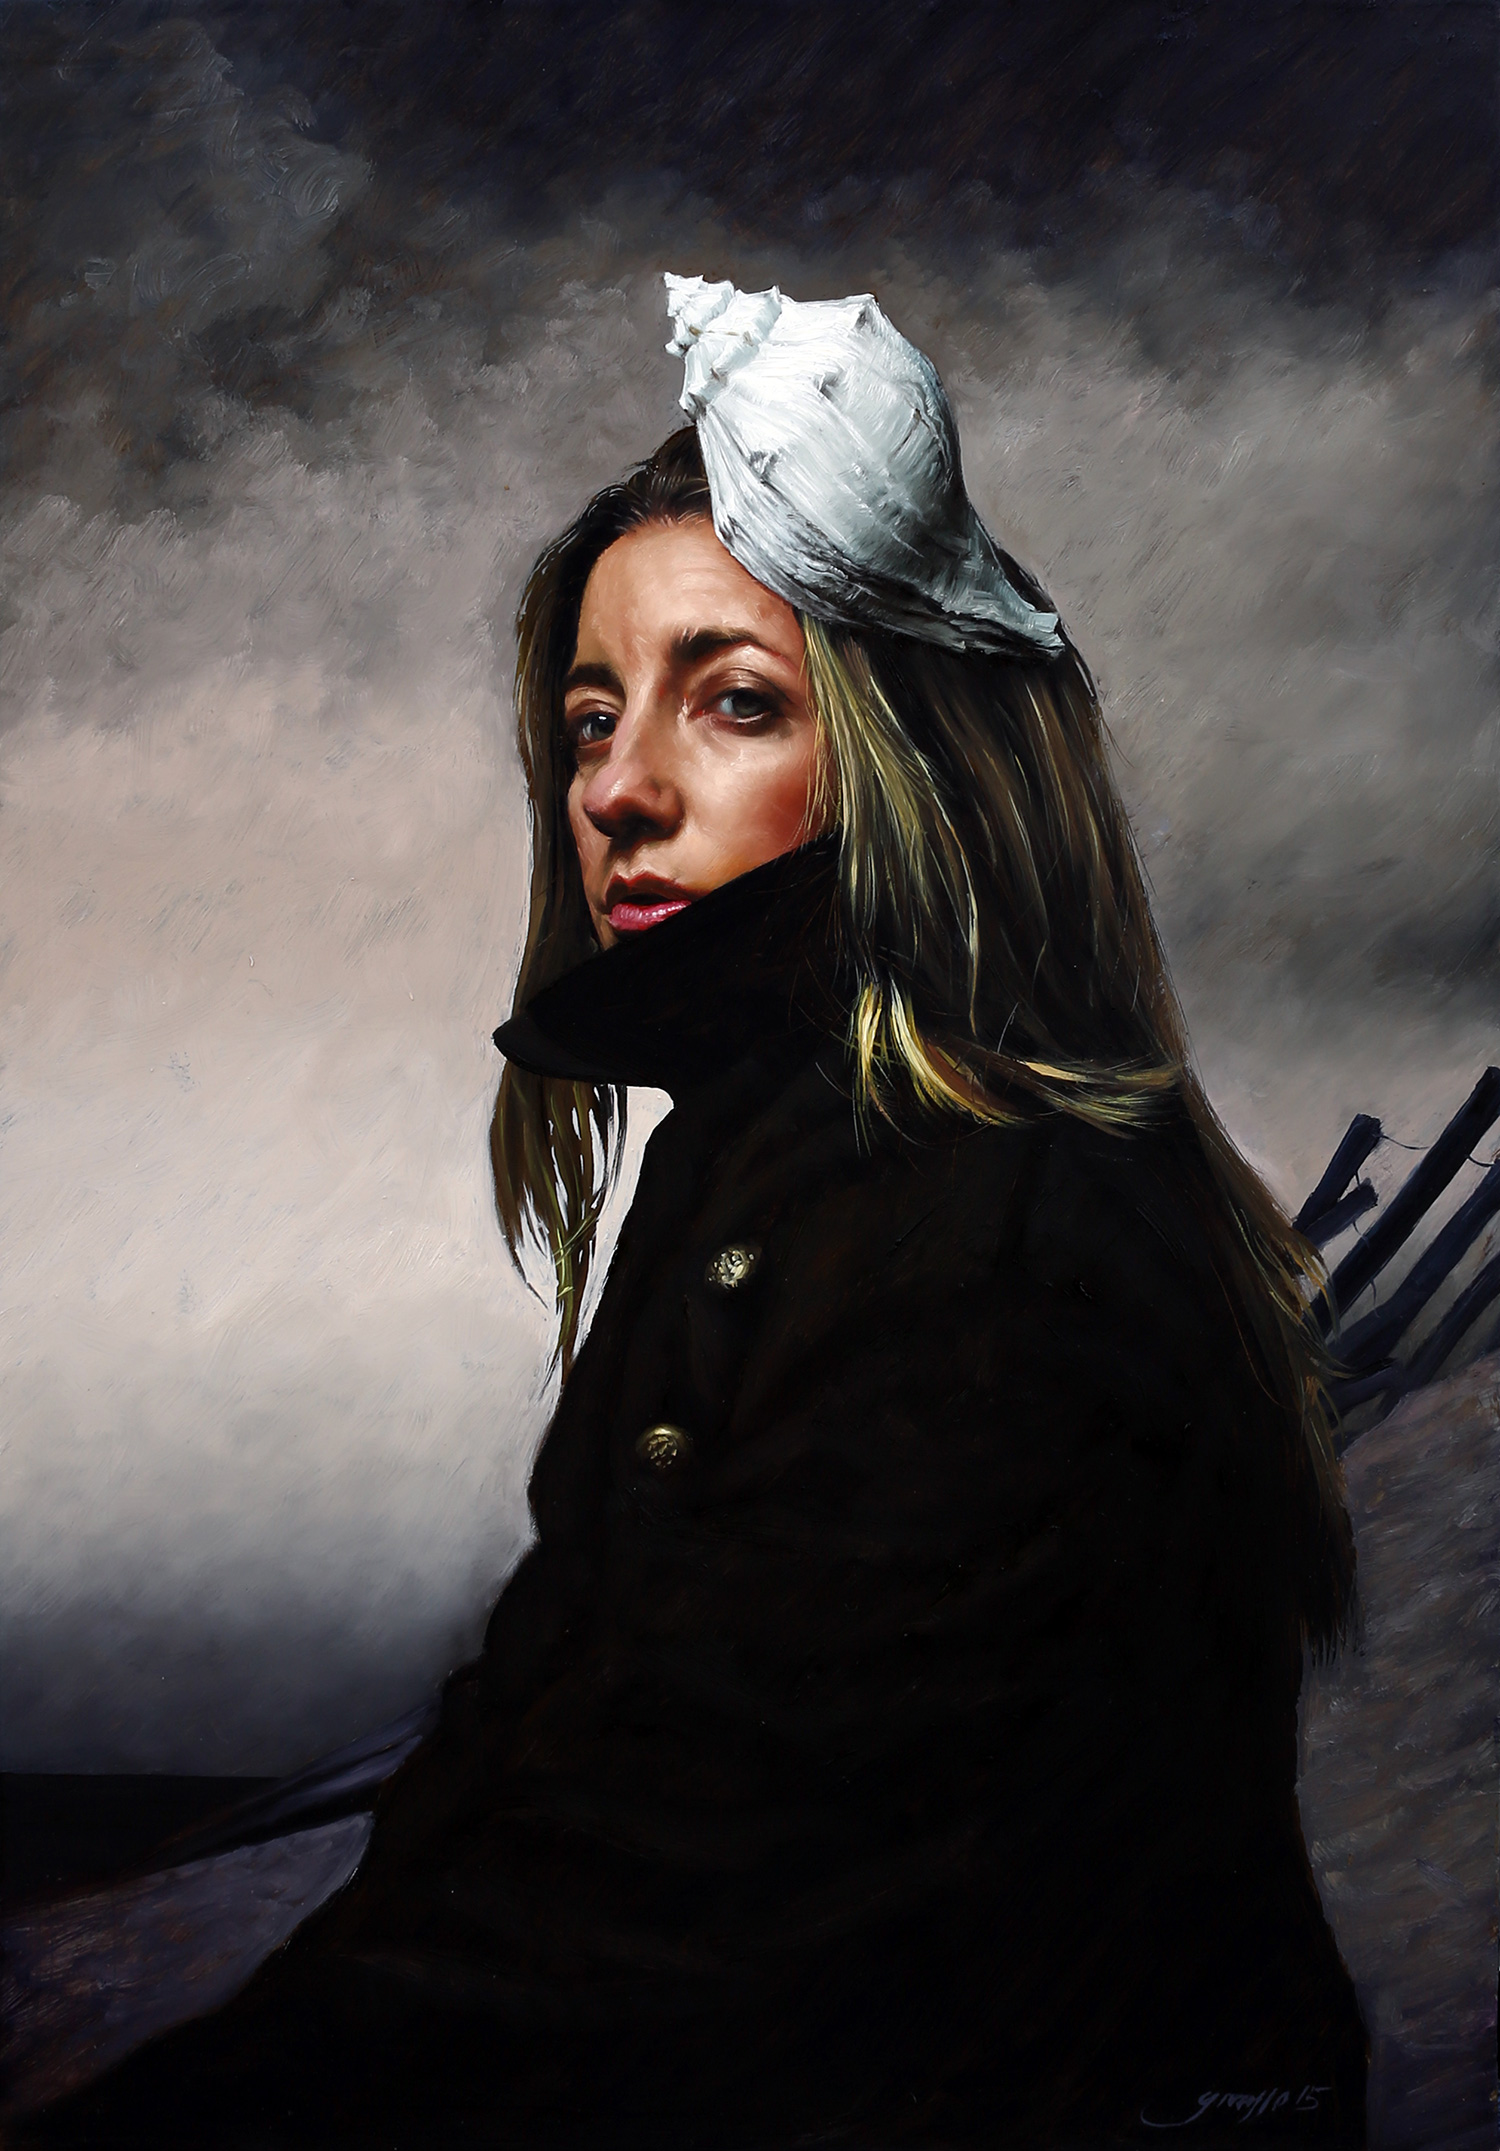 Victor Grasso - The Whelk